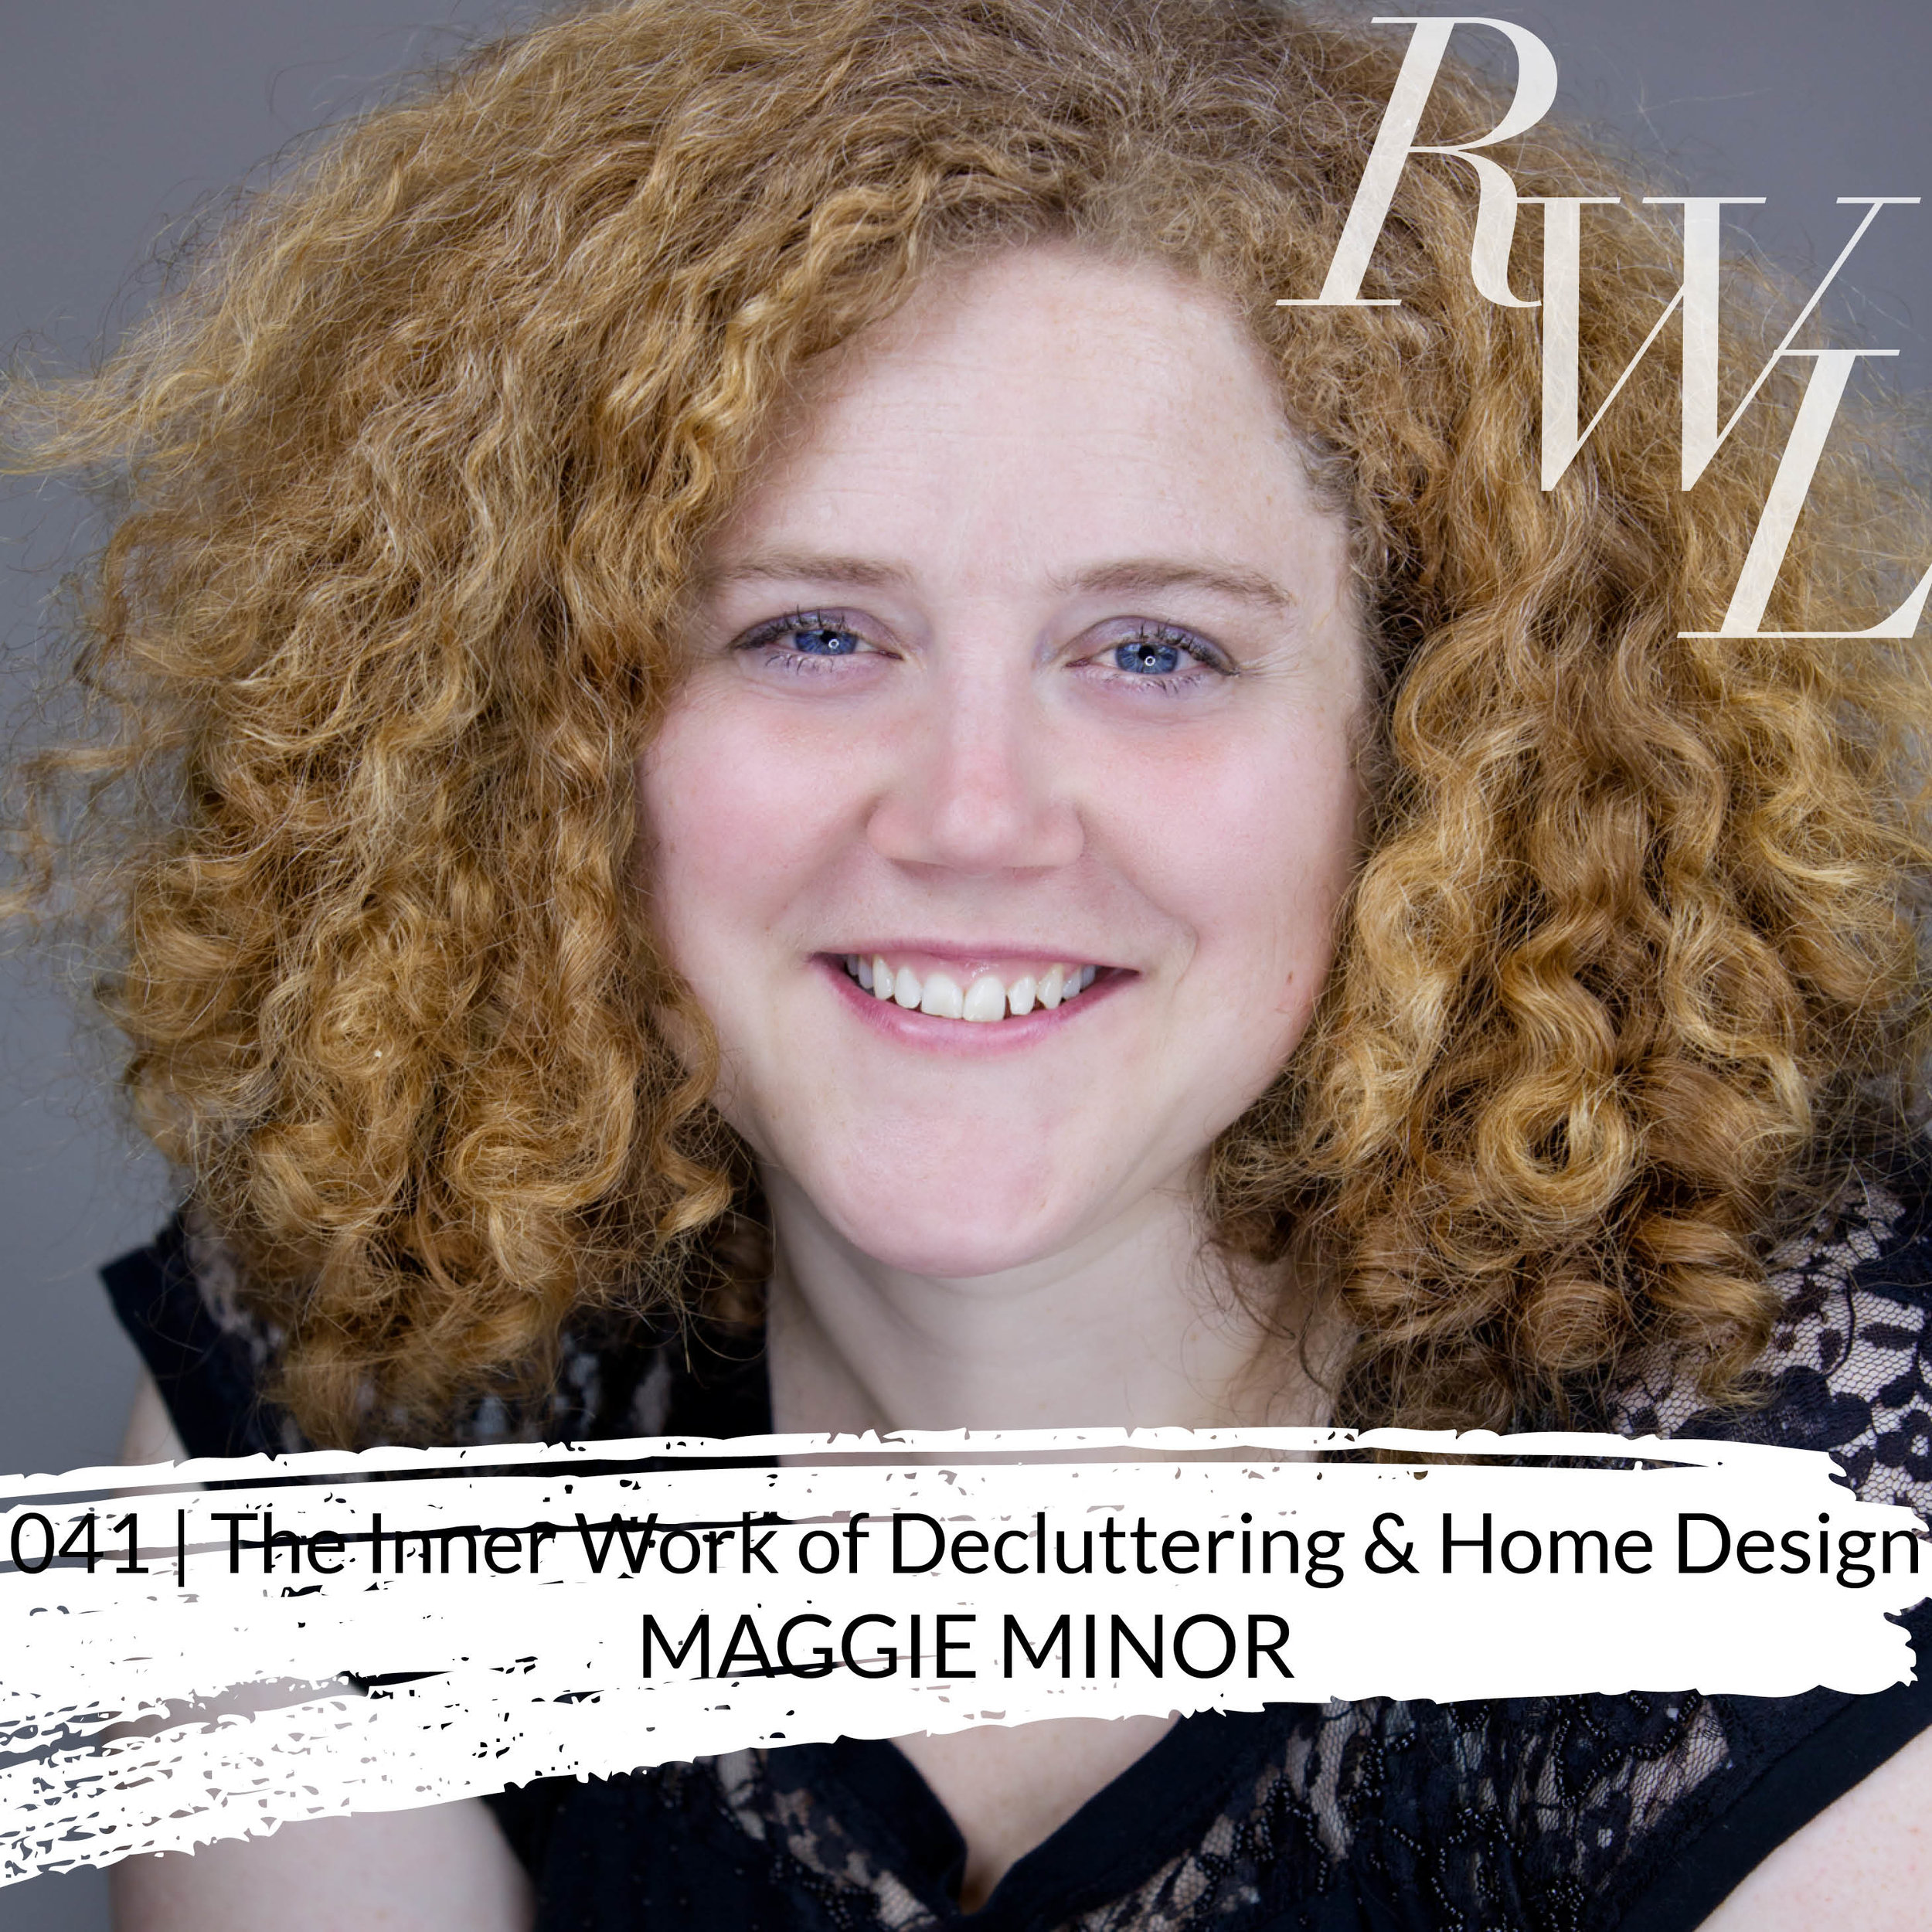 Podcast Guest on Inspiring Women Leaders - The Inner Work of Decluttering & Home Design